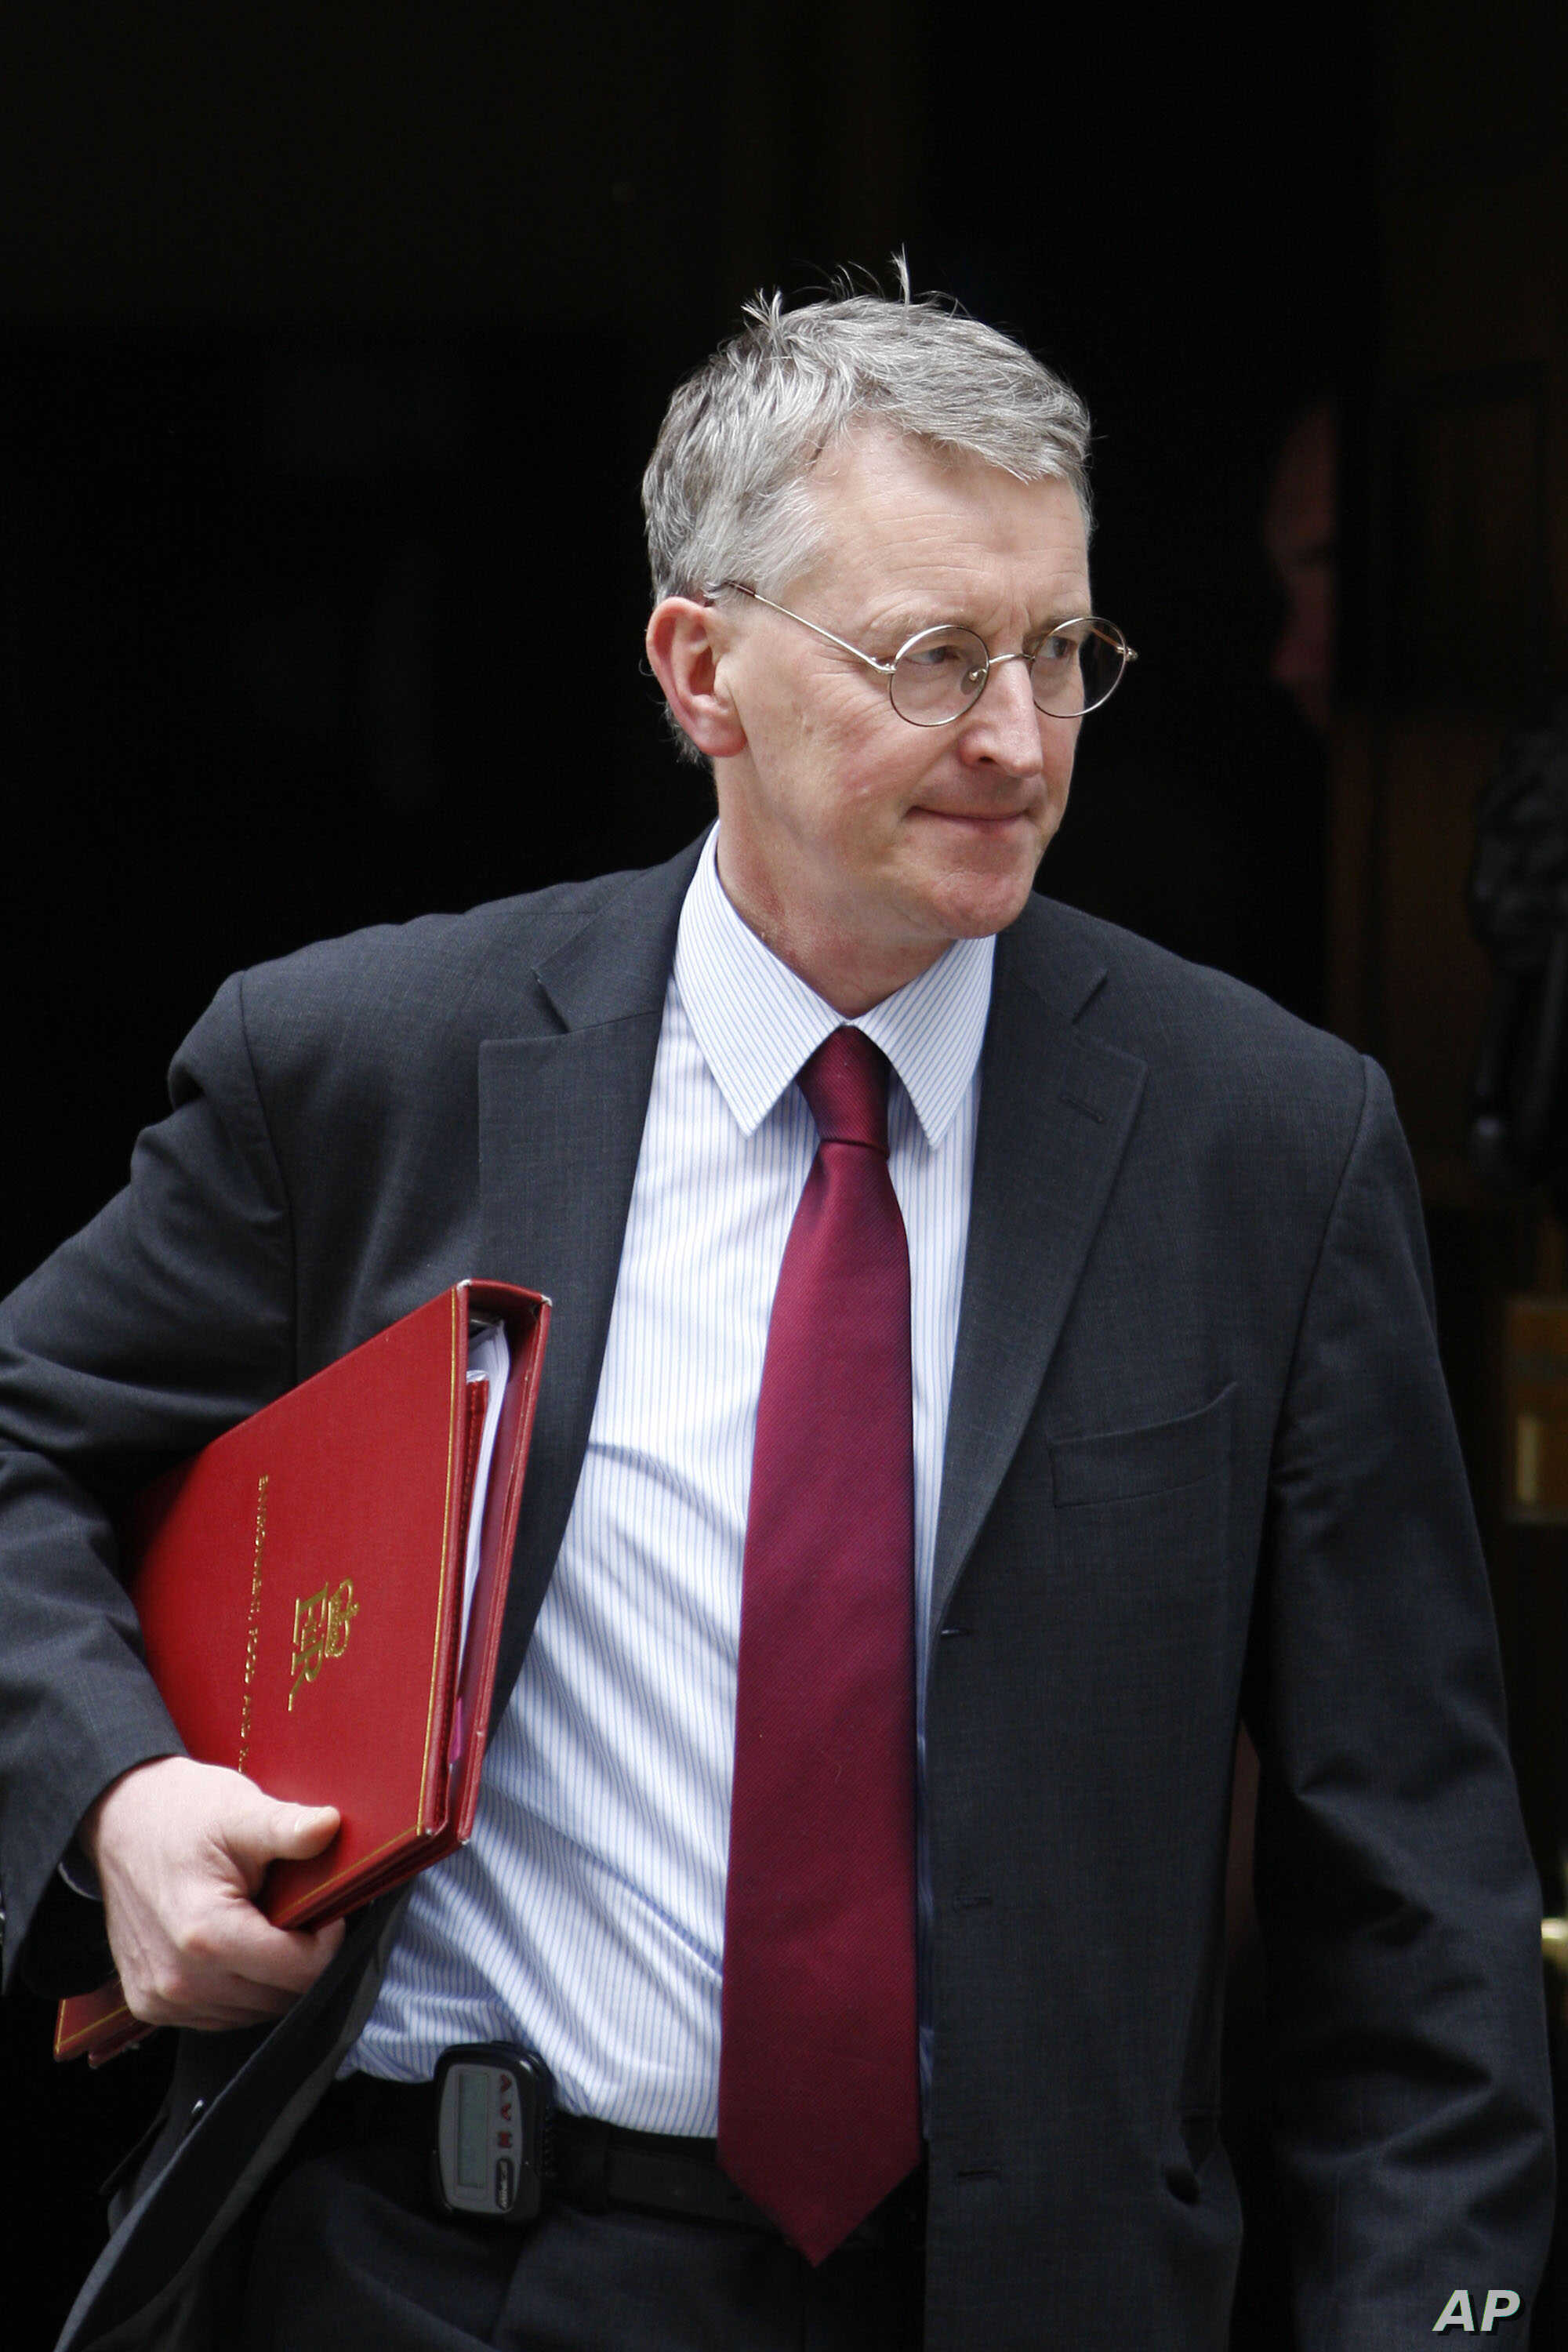 Britain Environment Secretary, Hilary Benn leaves 10 Downing Street in London after an extraordinary Cabinet meeting, Friday, June 12, 2009. The meeting involved all the Cabinet plus a number of lower-ranked ministers who attend when their areas of…